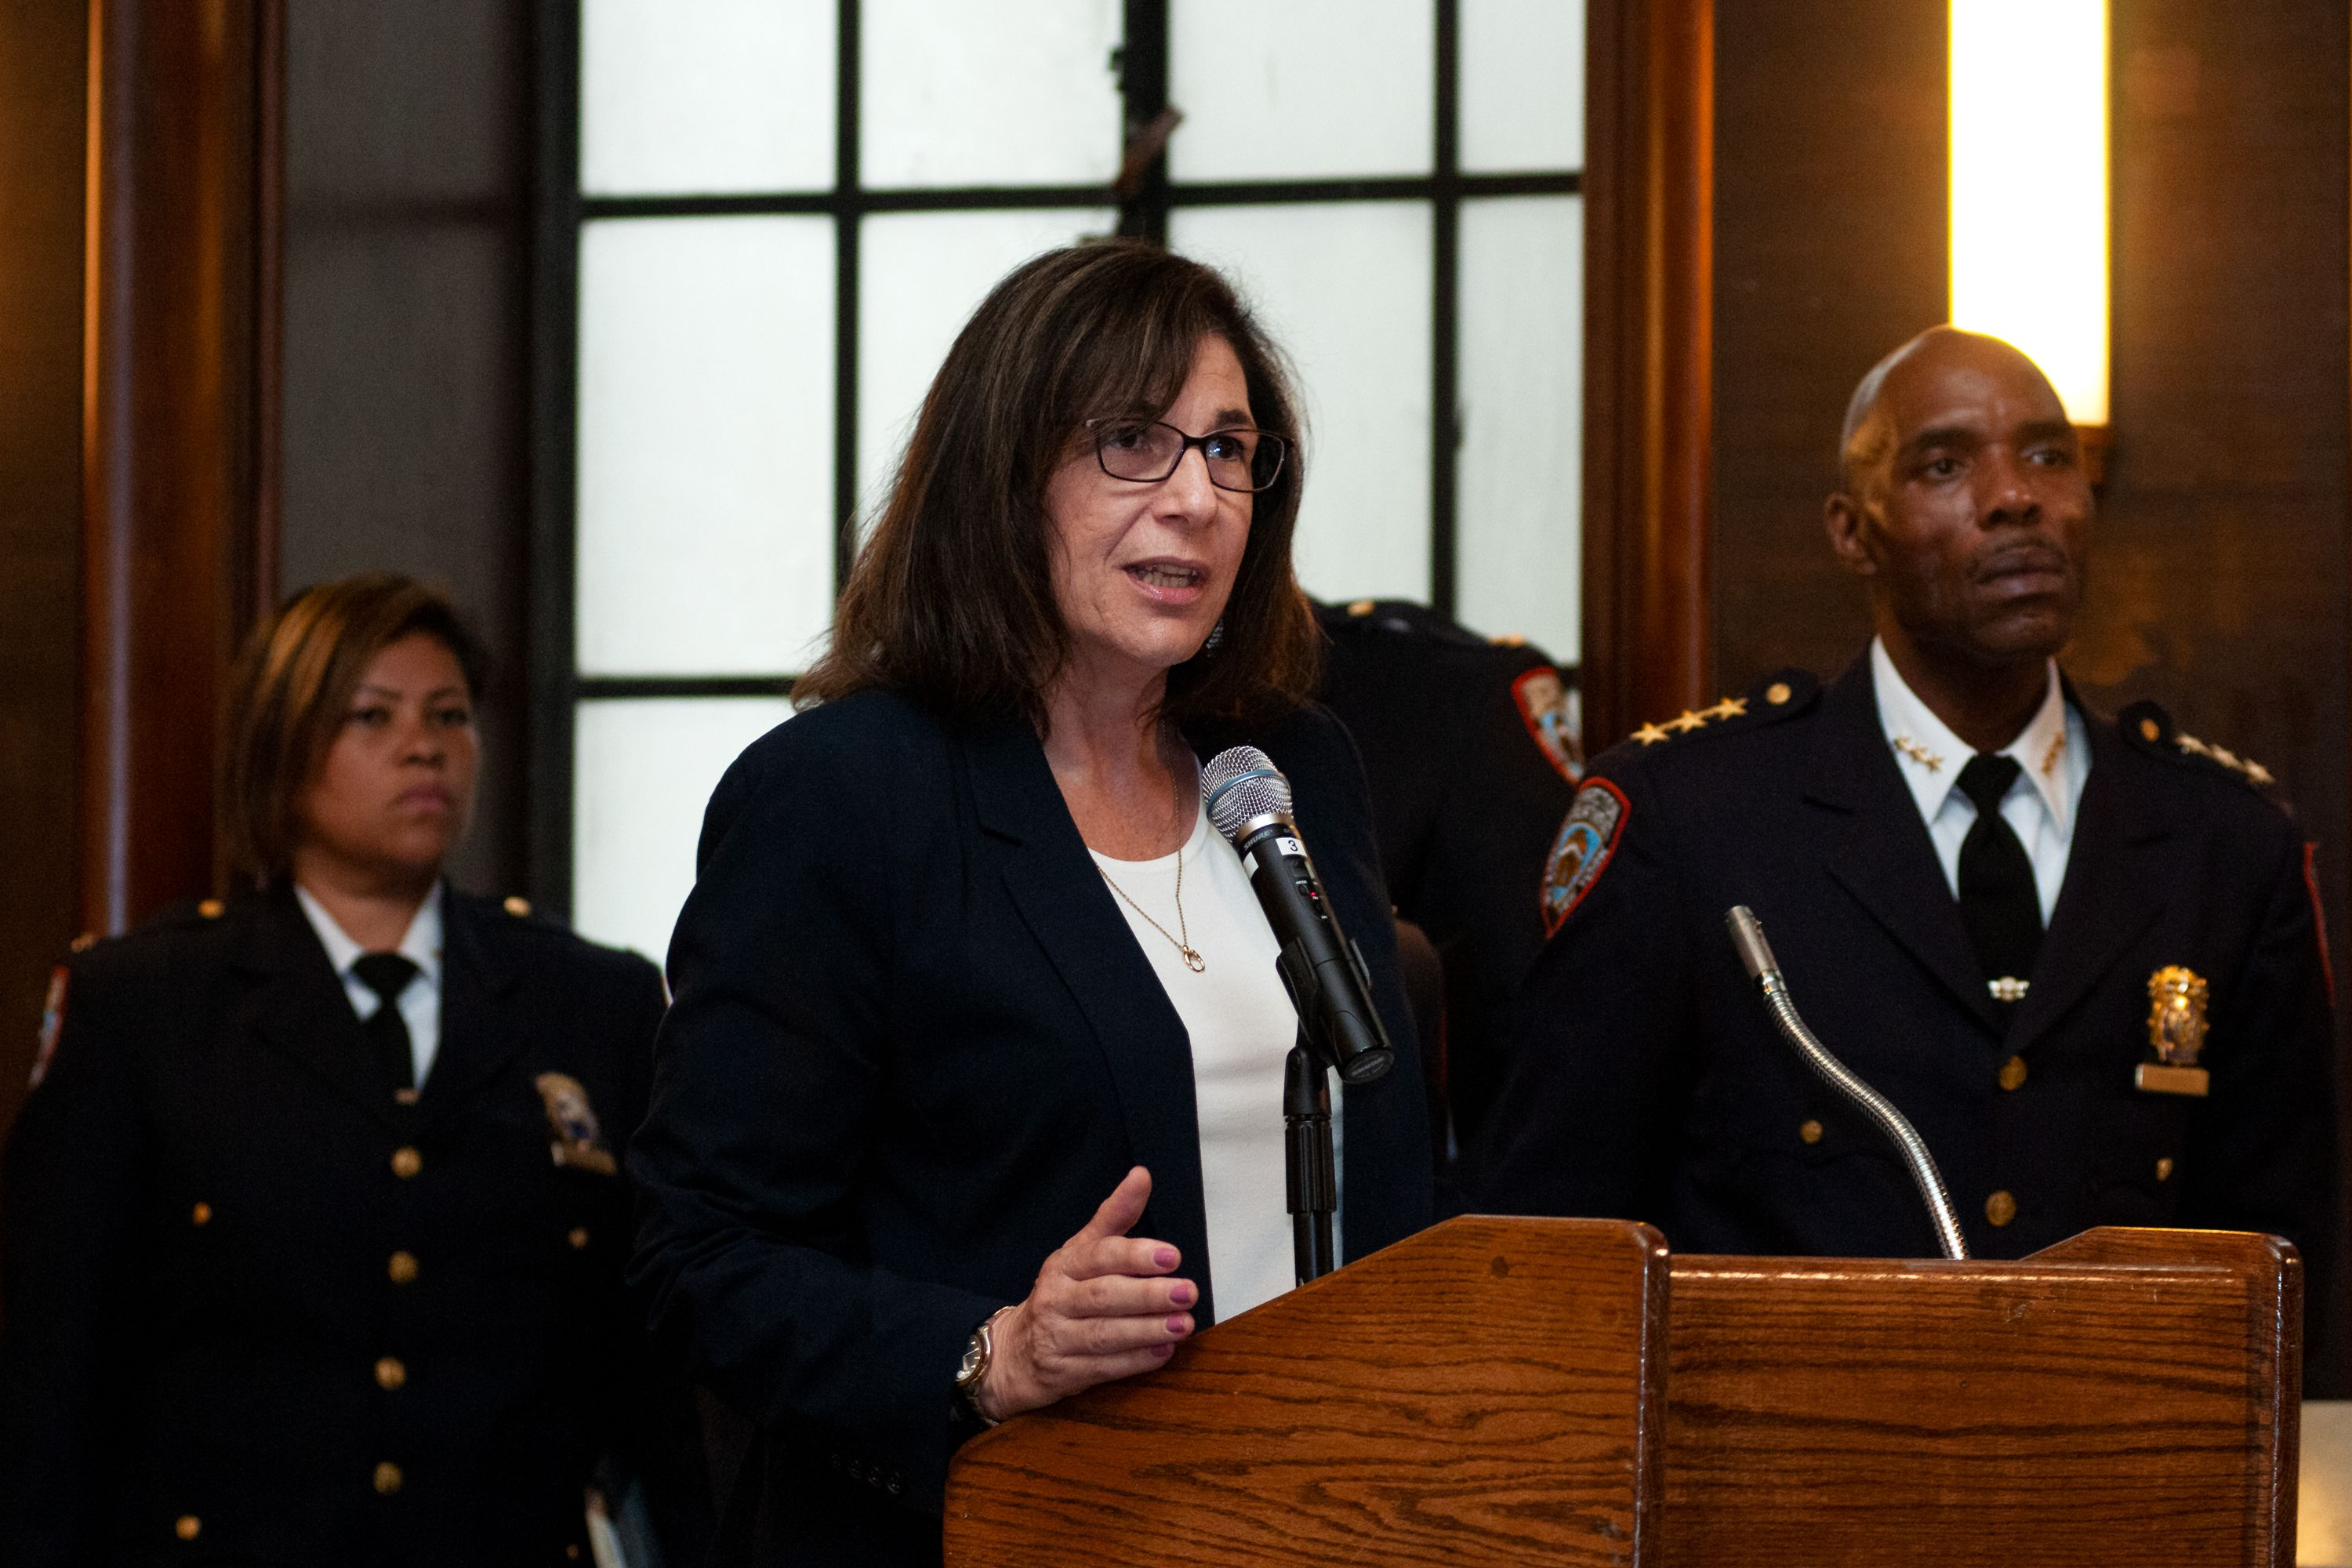 Outgoing Department of Correction Commissioner Cynthia Brann speaks during board meeting in lower Manhattan, July 9, 2019.